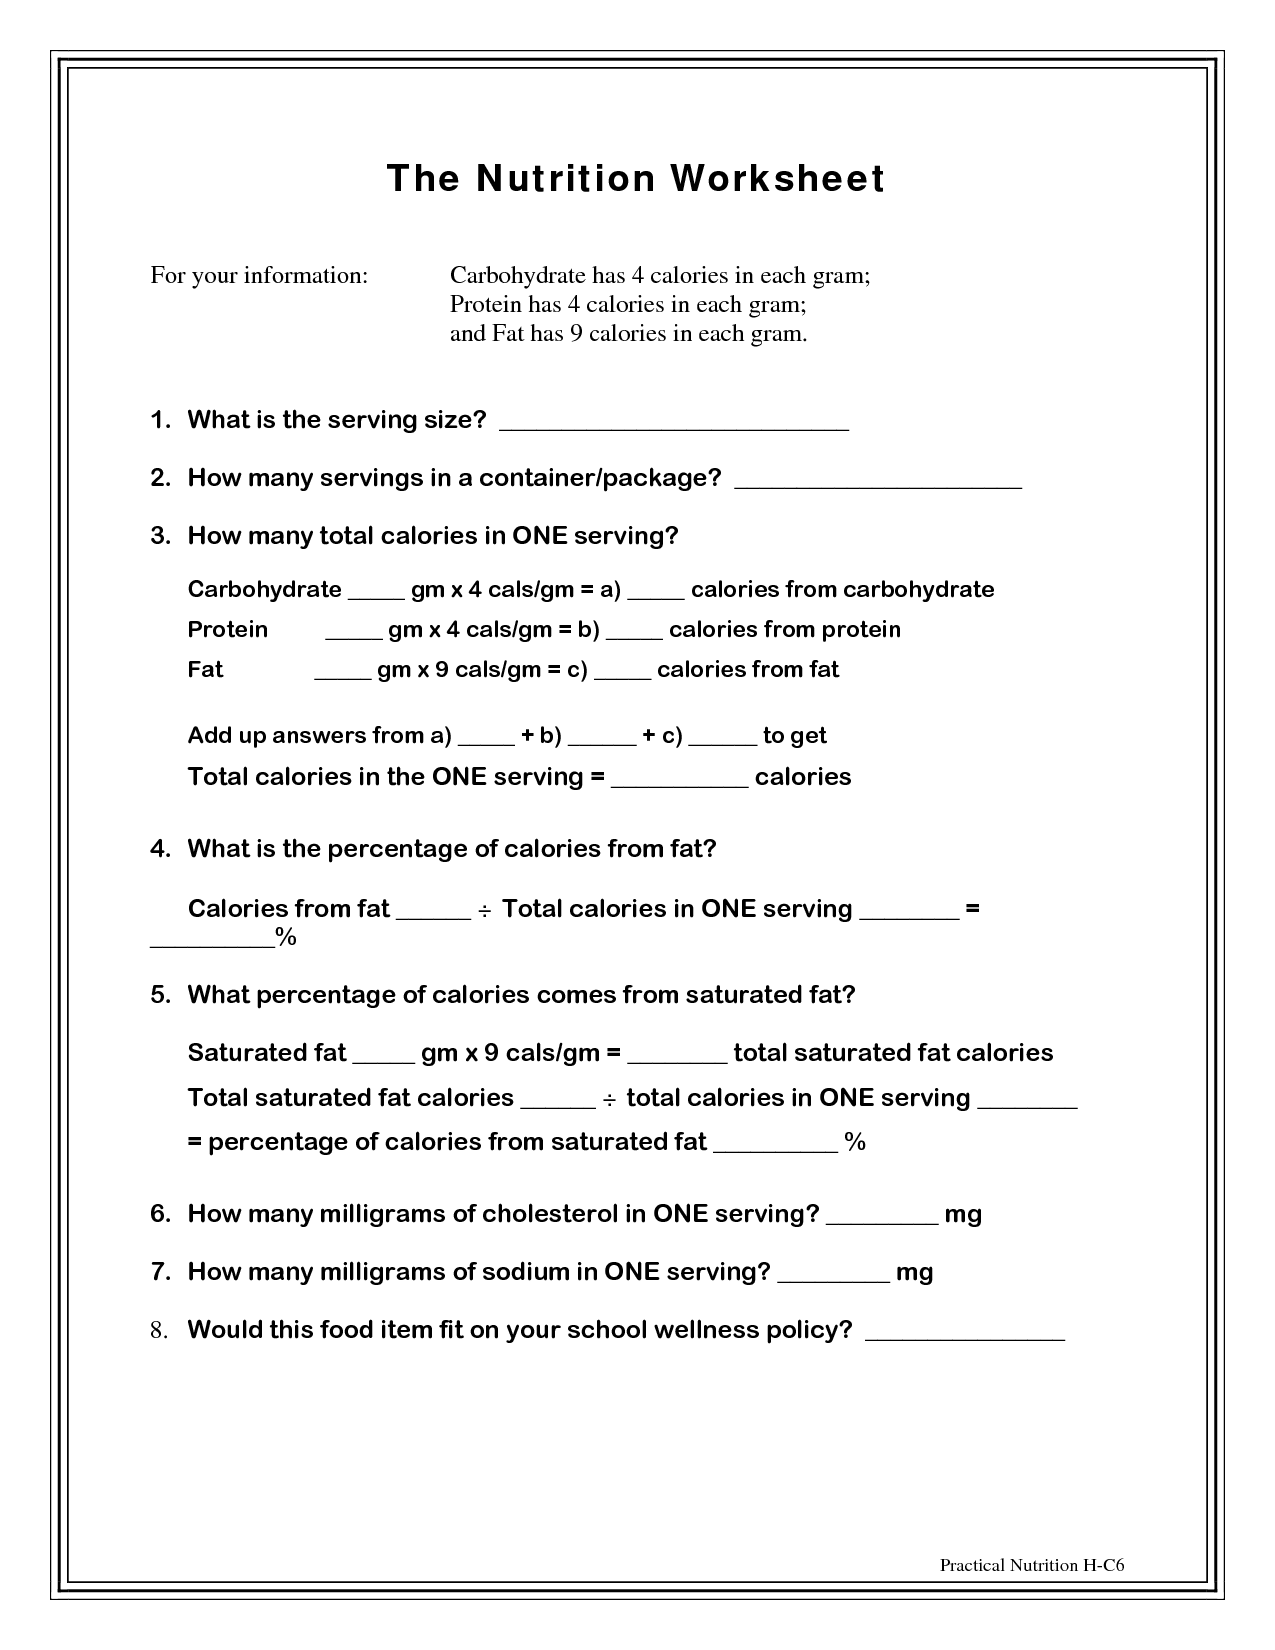 12 Best Images Of Nutrient Worksheets For Students